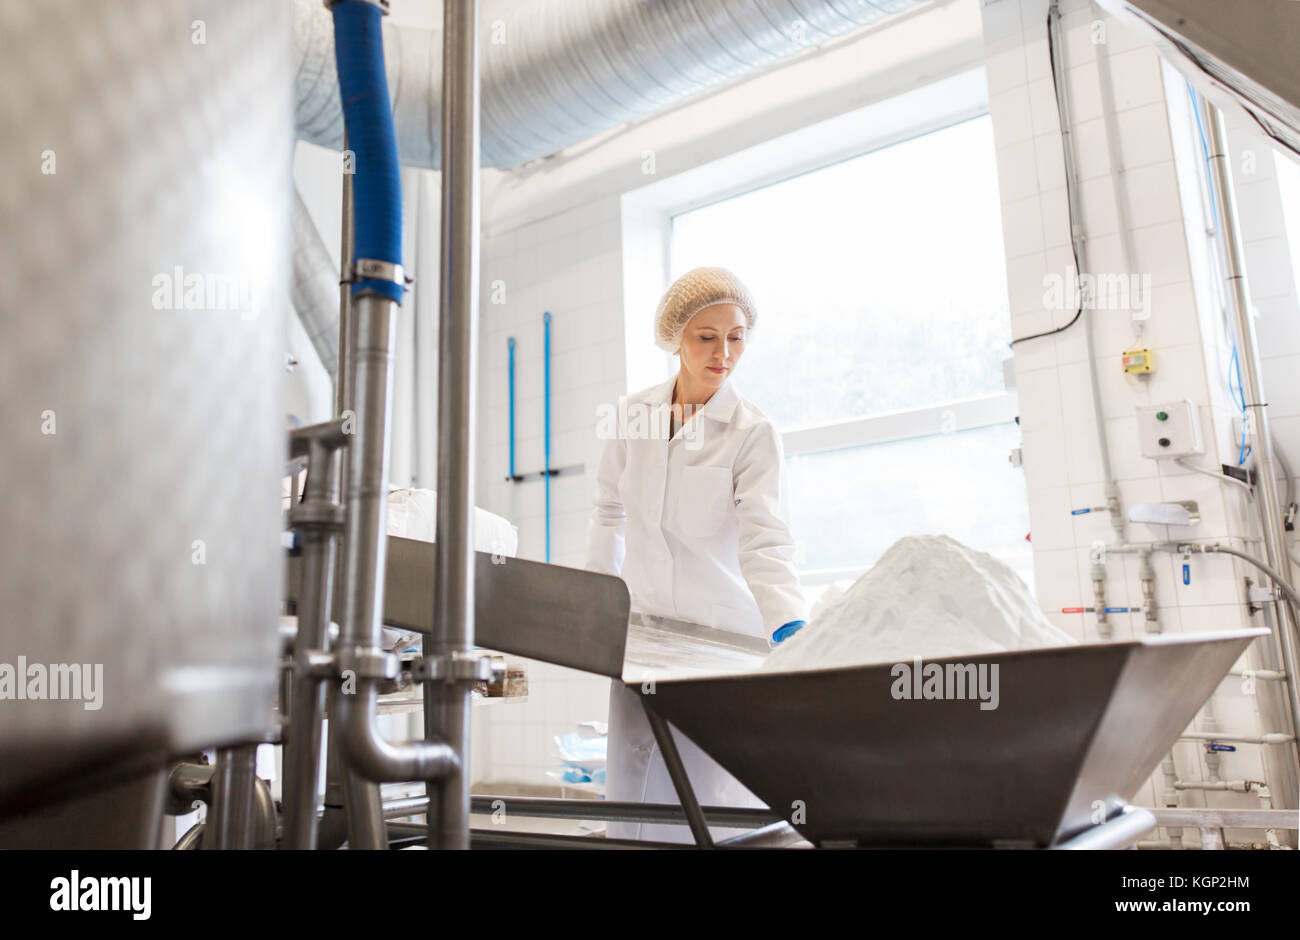 woman working at ice cream factory conveyor - Stock Image